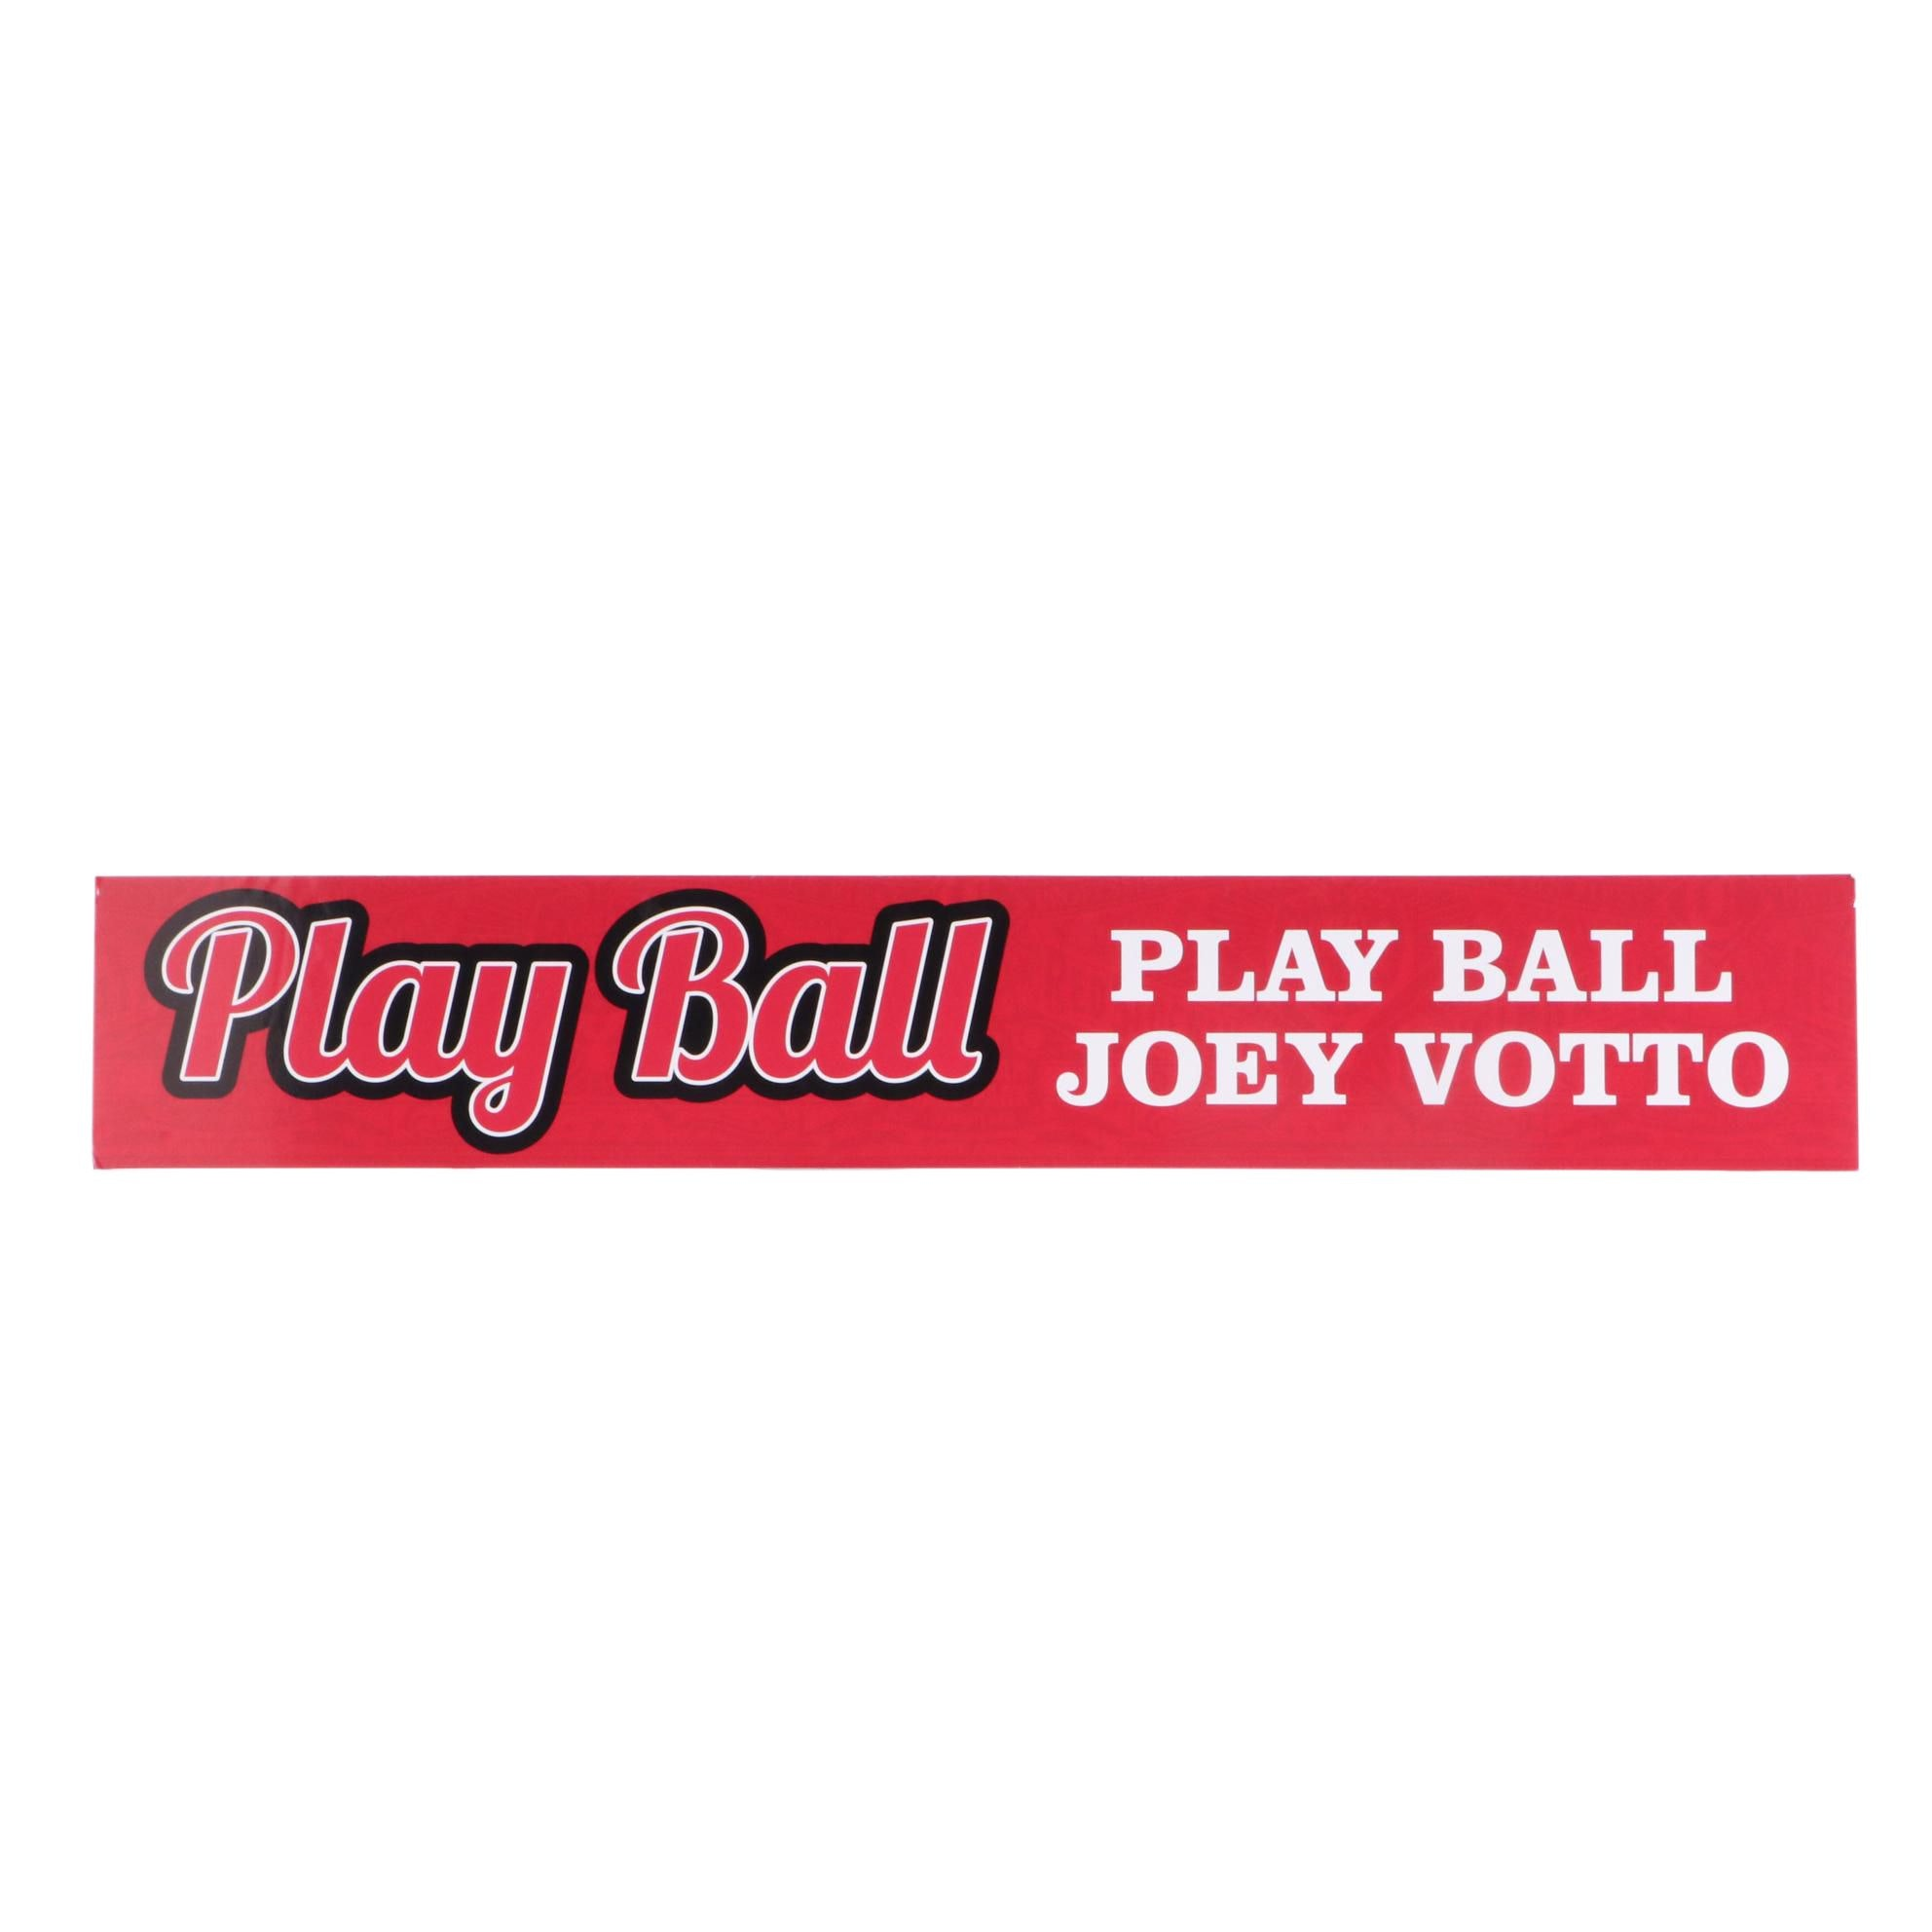 """Joey Votto """"Play Ball"""" Reds Hall of Fame Exhibit Sign"""